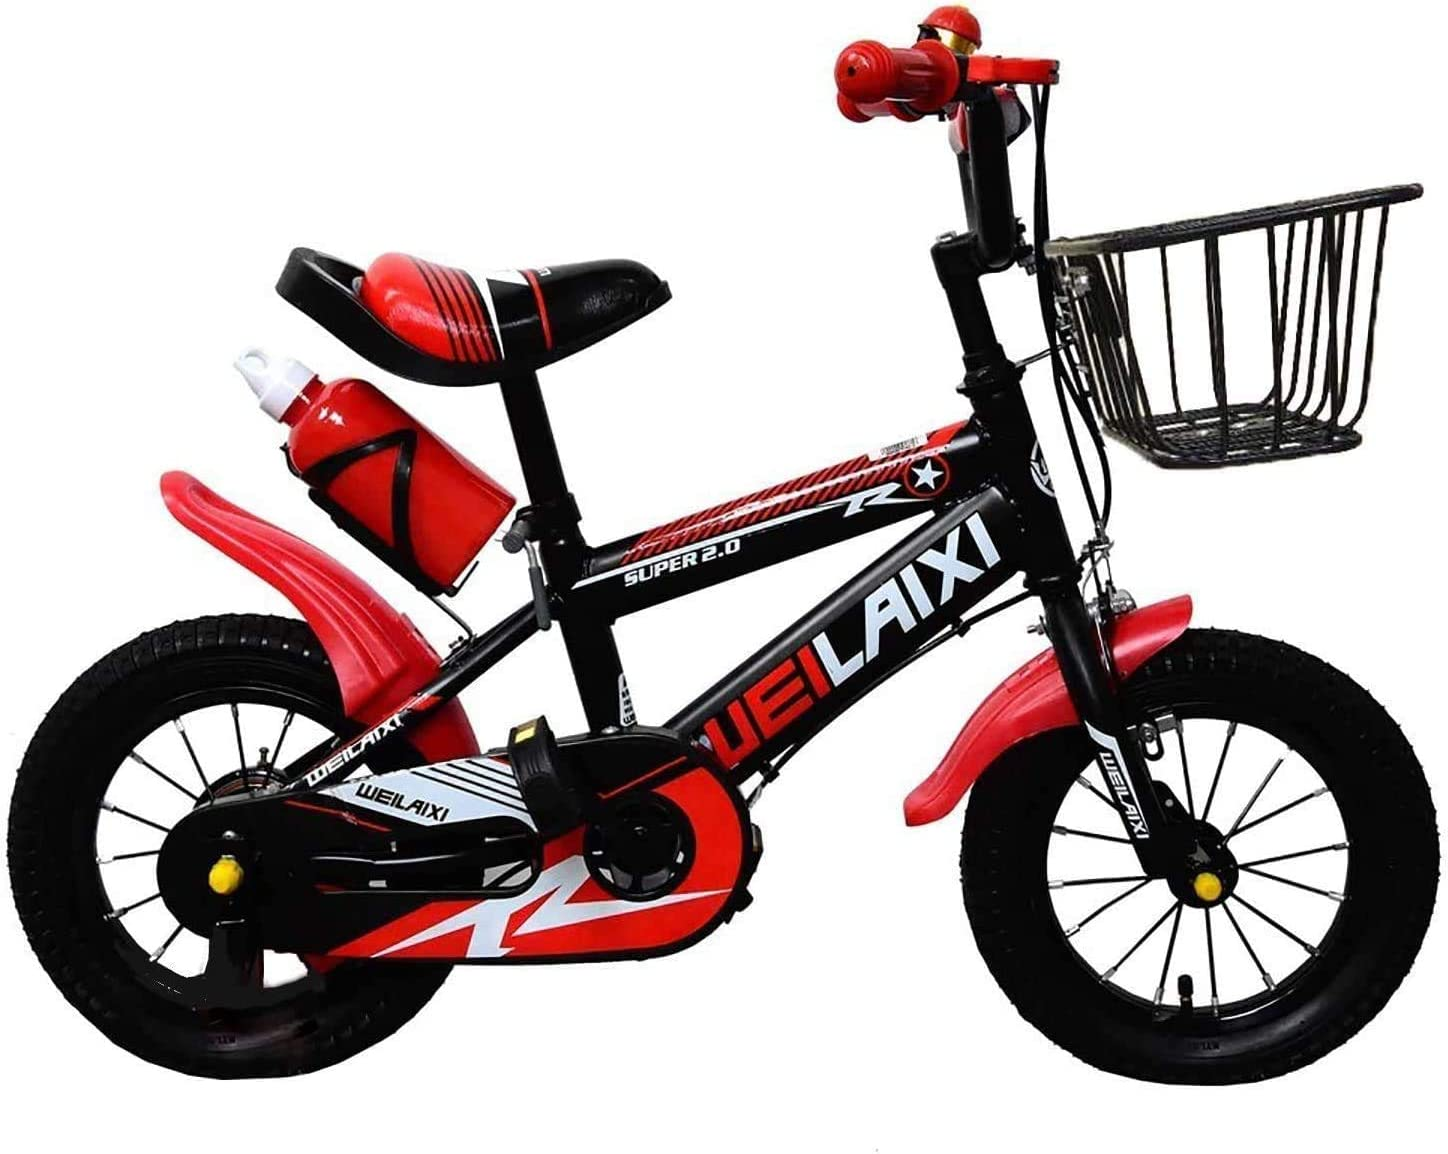 Air Tires and Brakes Mountain Sport Edition Training Bicycle for Children Bikes with Pedal Adjustable Seat /& Handlebar FREE HELMET First Running Balance Bike for Kids with Water Bottle